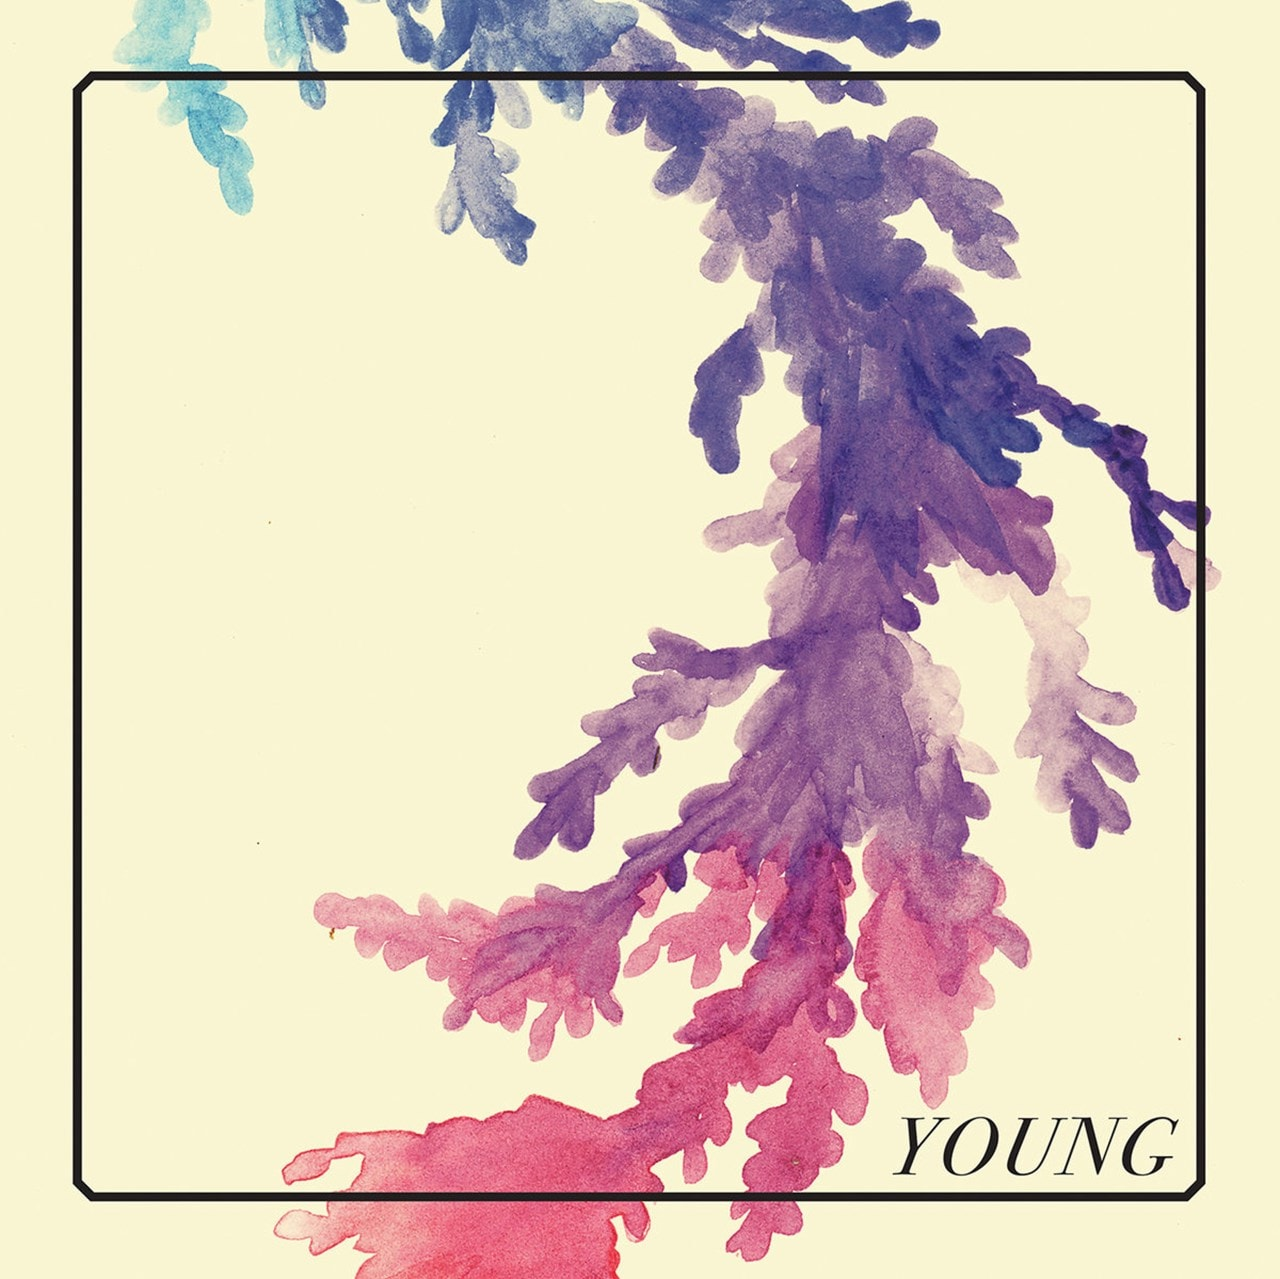 Young - 1